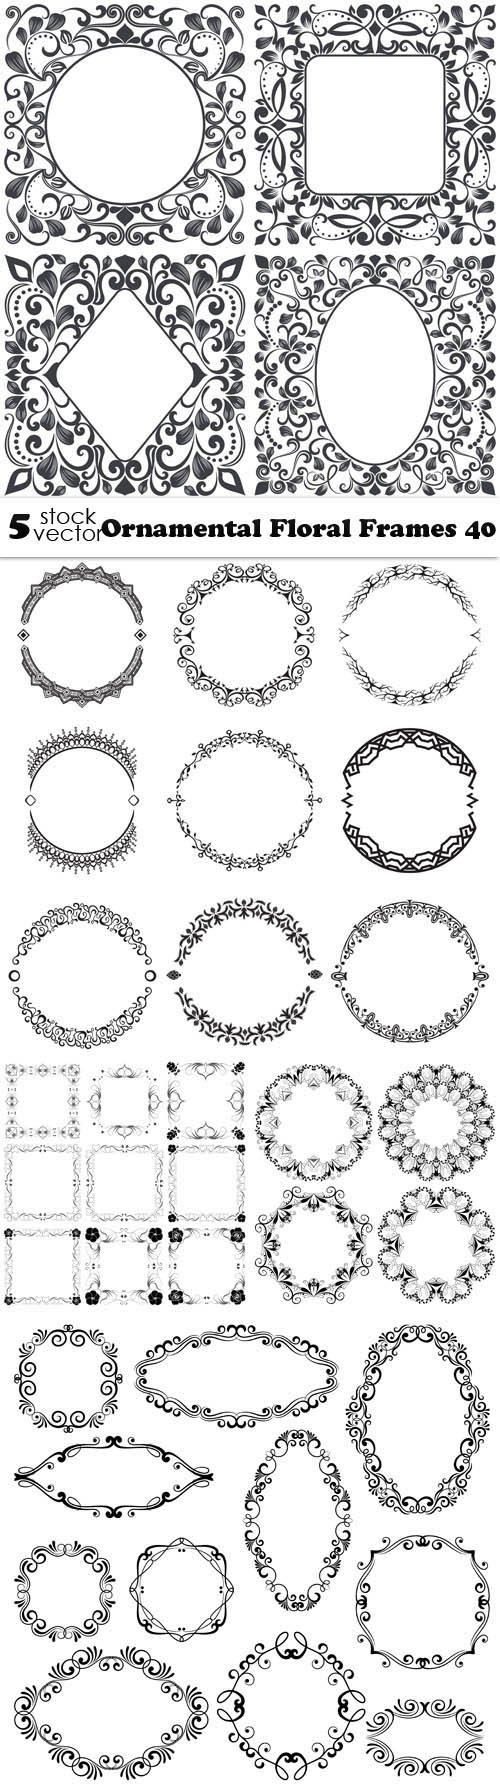 Vectors - Ornamental Floral Frames 40